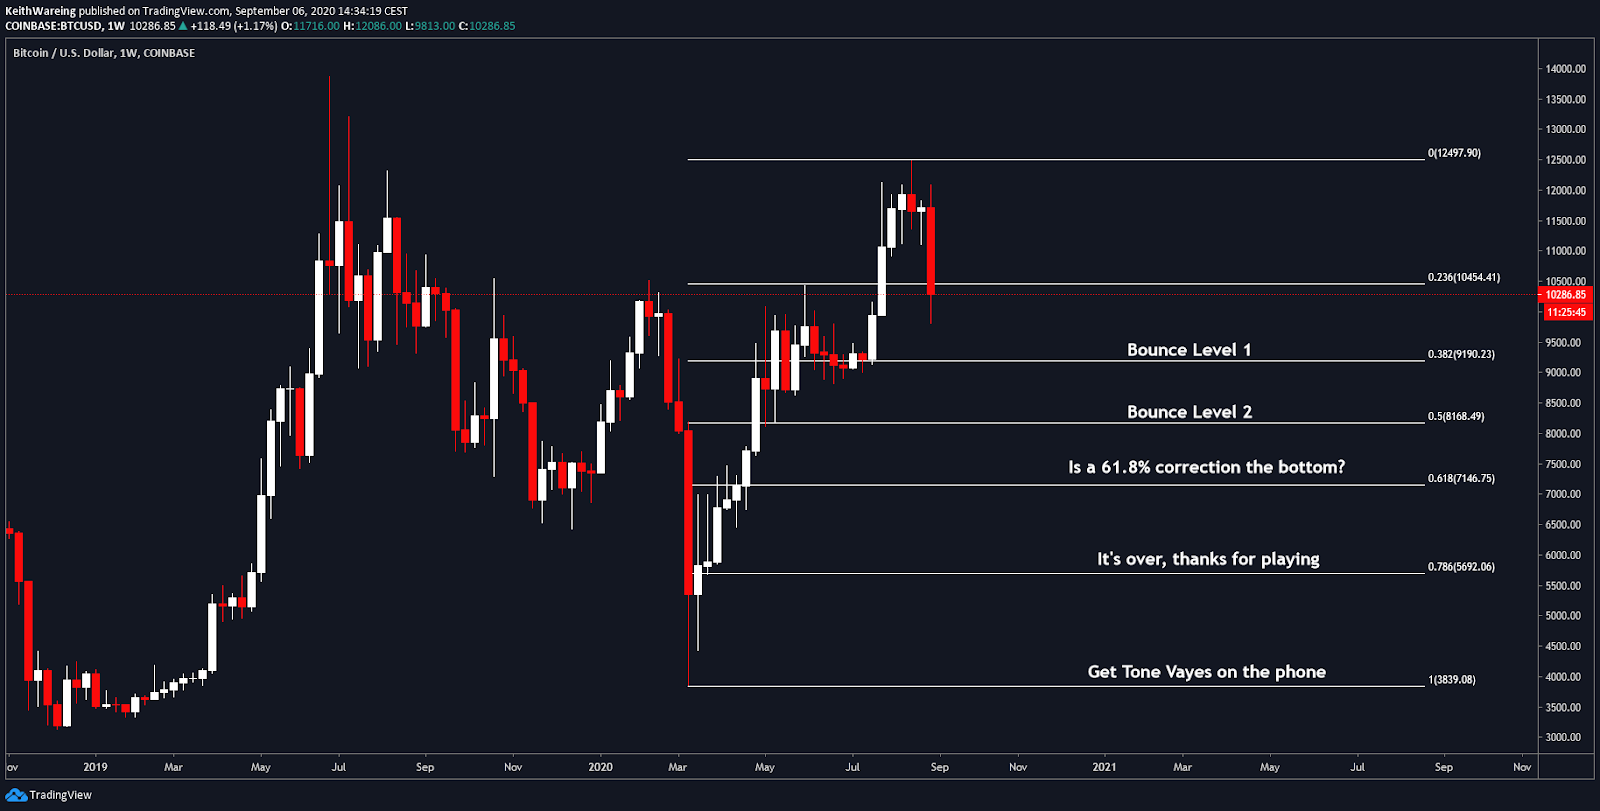 BTC/USD 1-week chart Source: TradingView